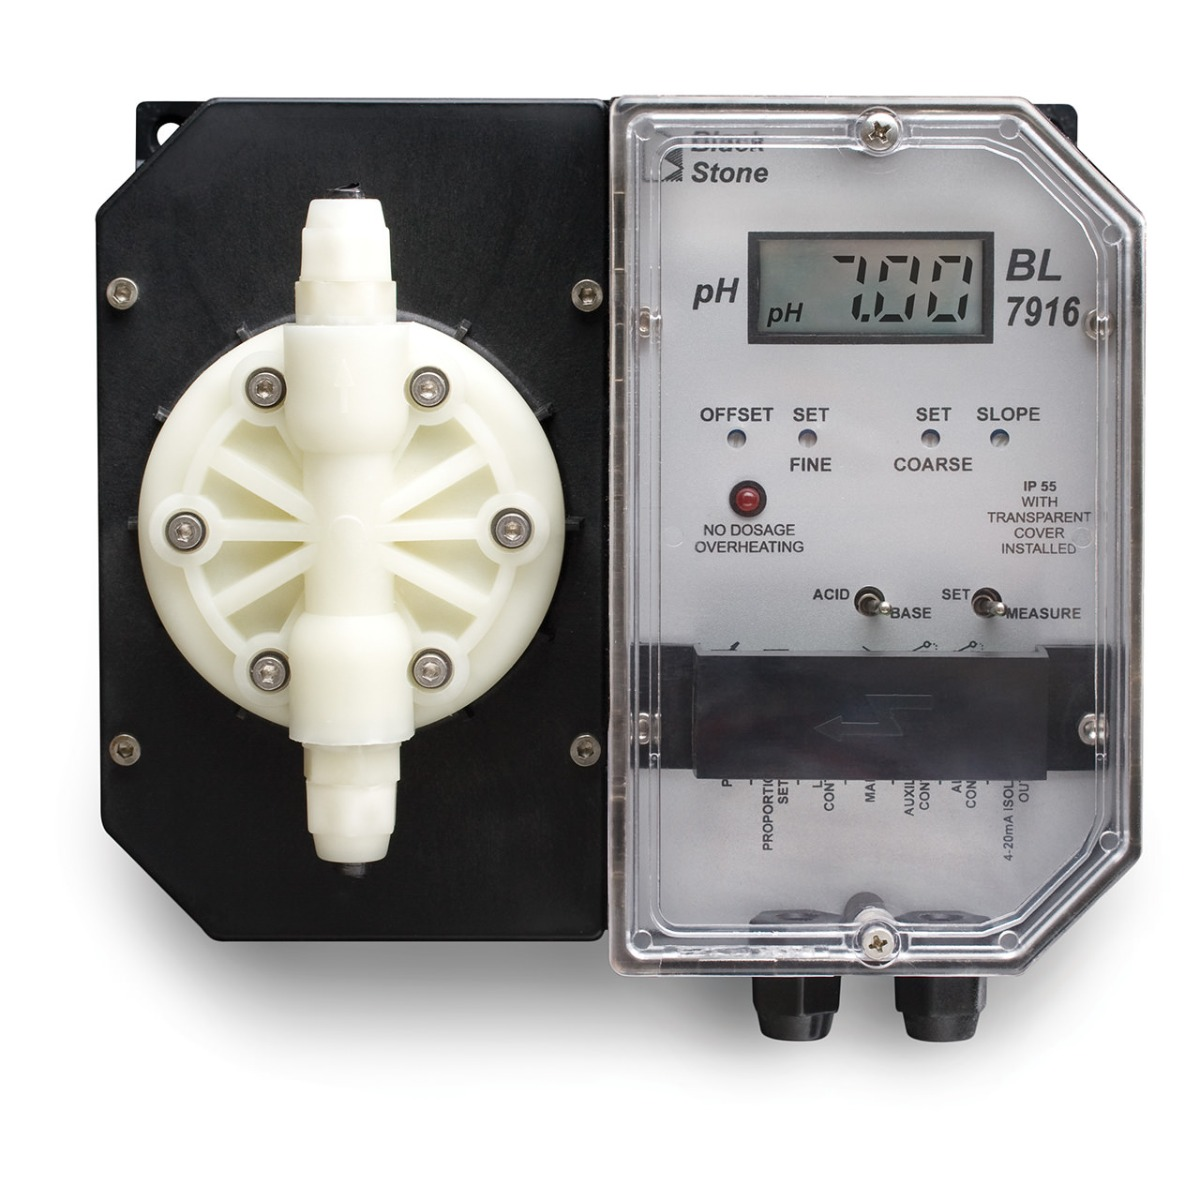 Wall Mounted pH Controller and Pump - BL7916